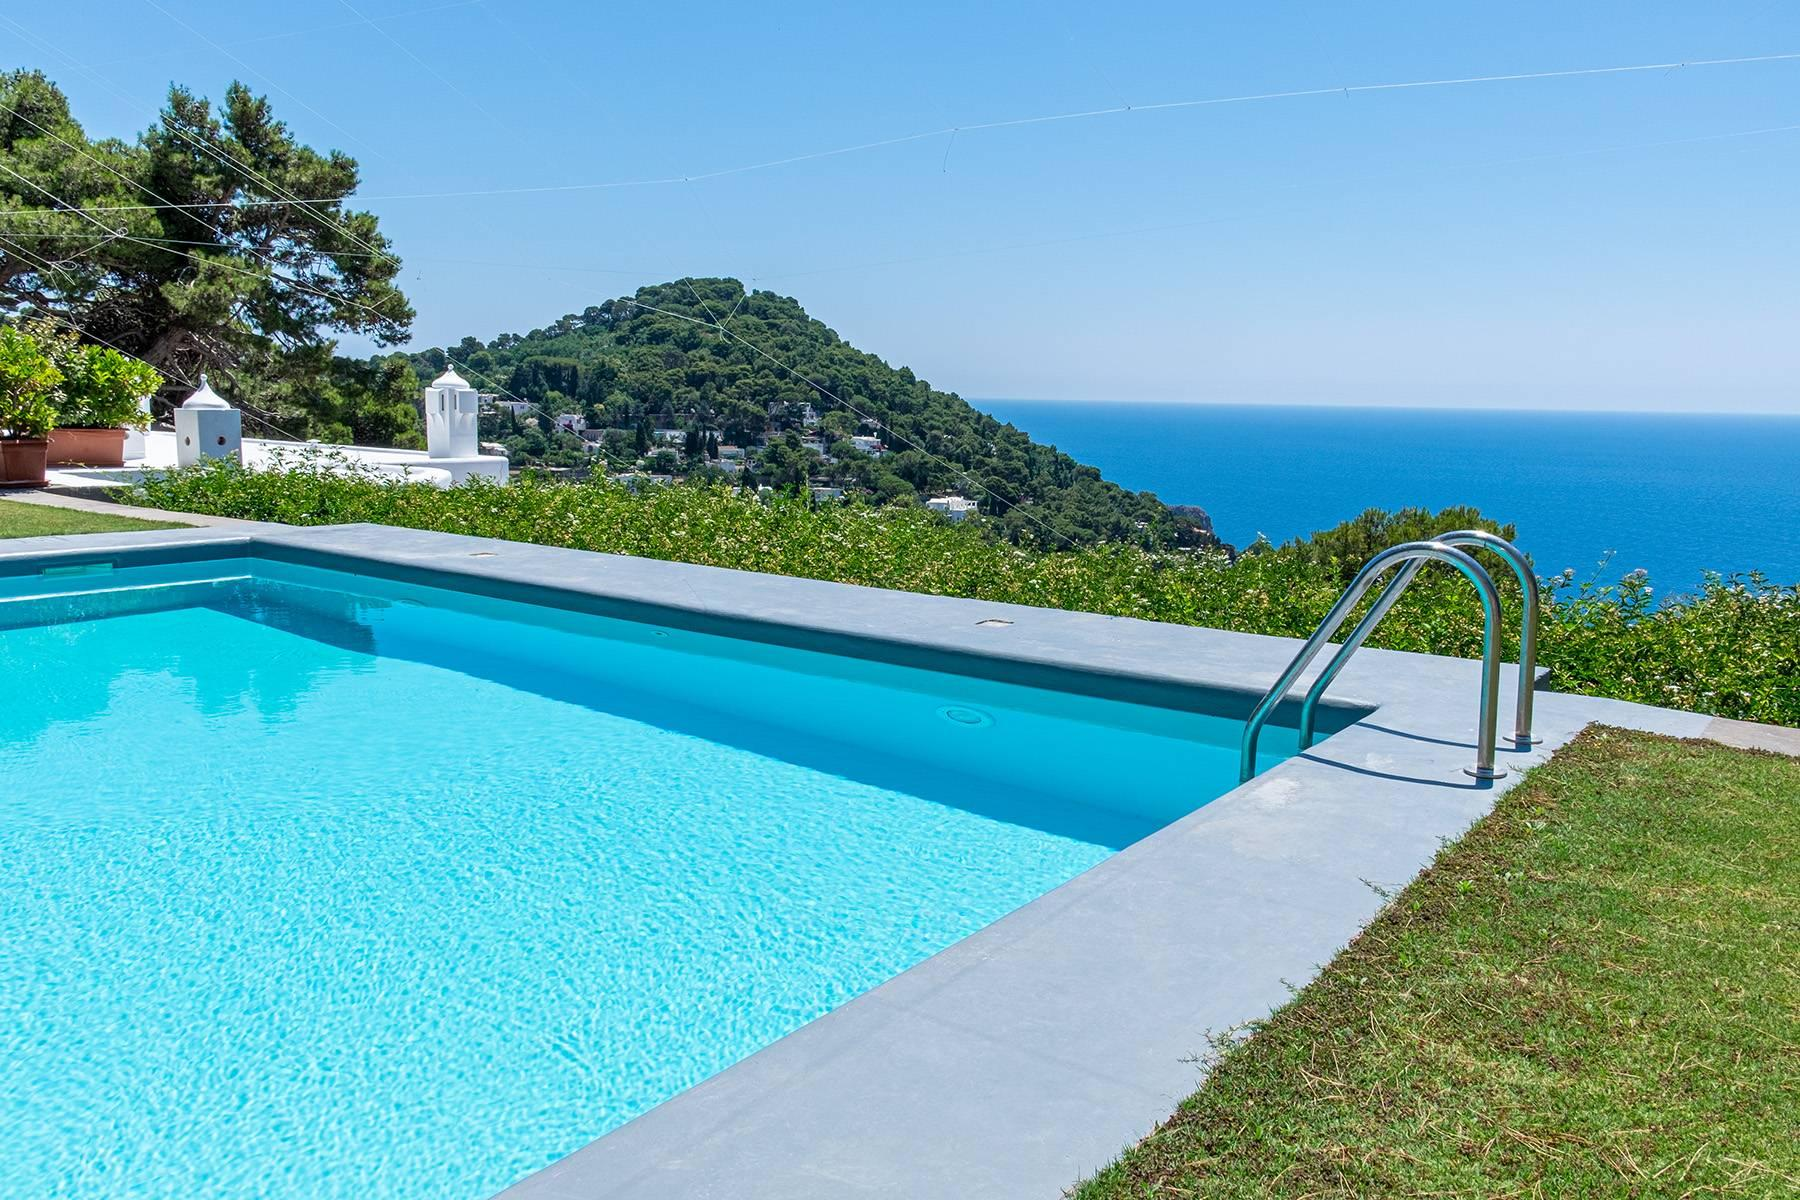 Stunning villa with swimming pool overlooking Capri and the sea - 30